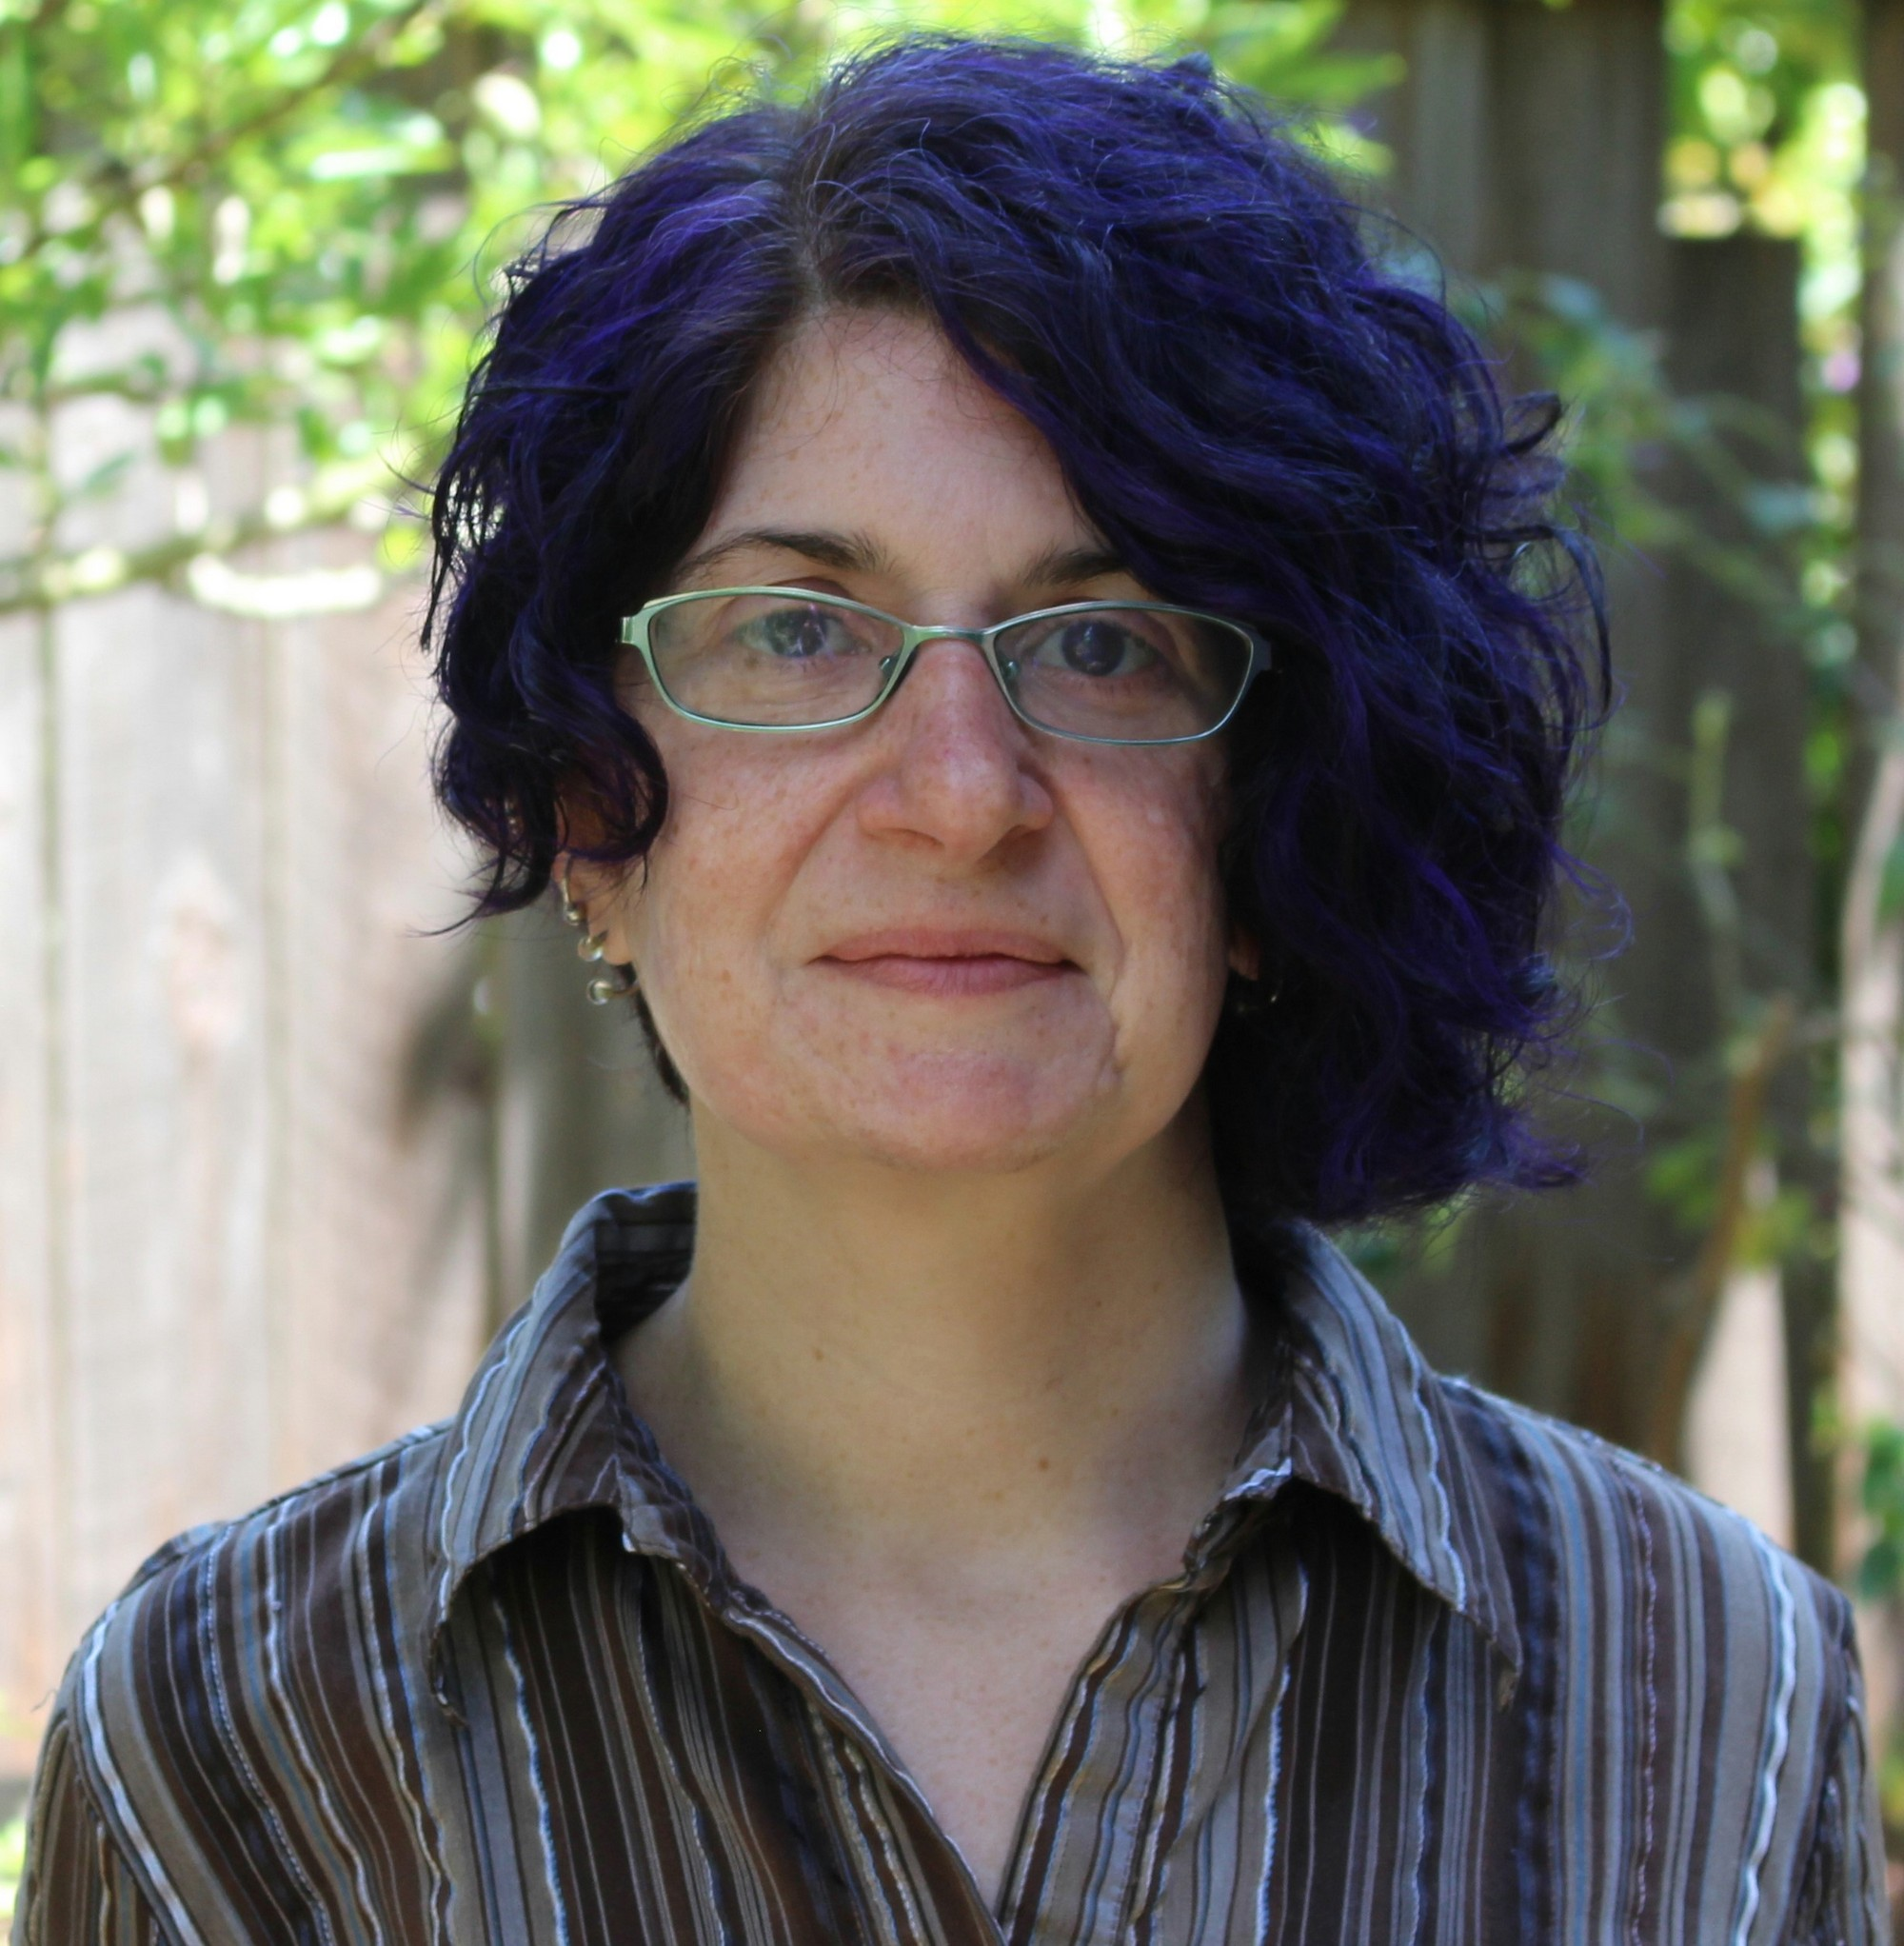 Rachel, a White woman with curly purple hair and glasses, in front of a tree and fence, wearing a warm gaze